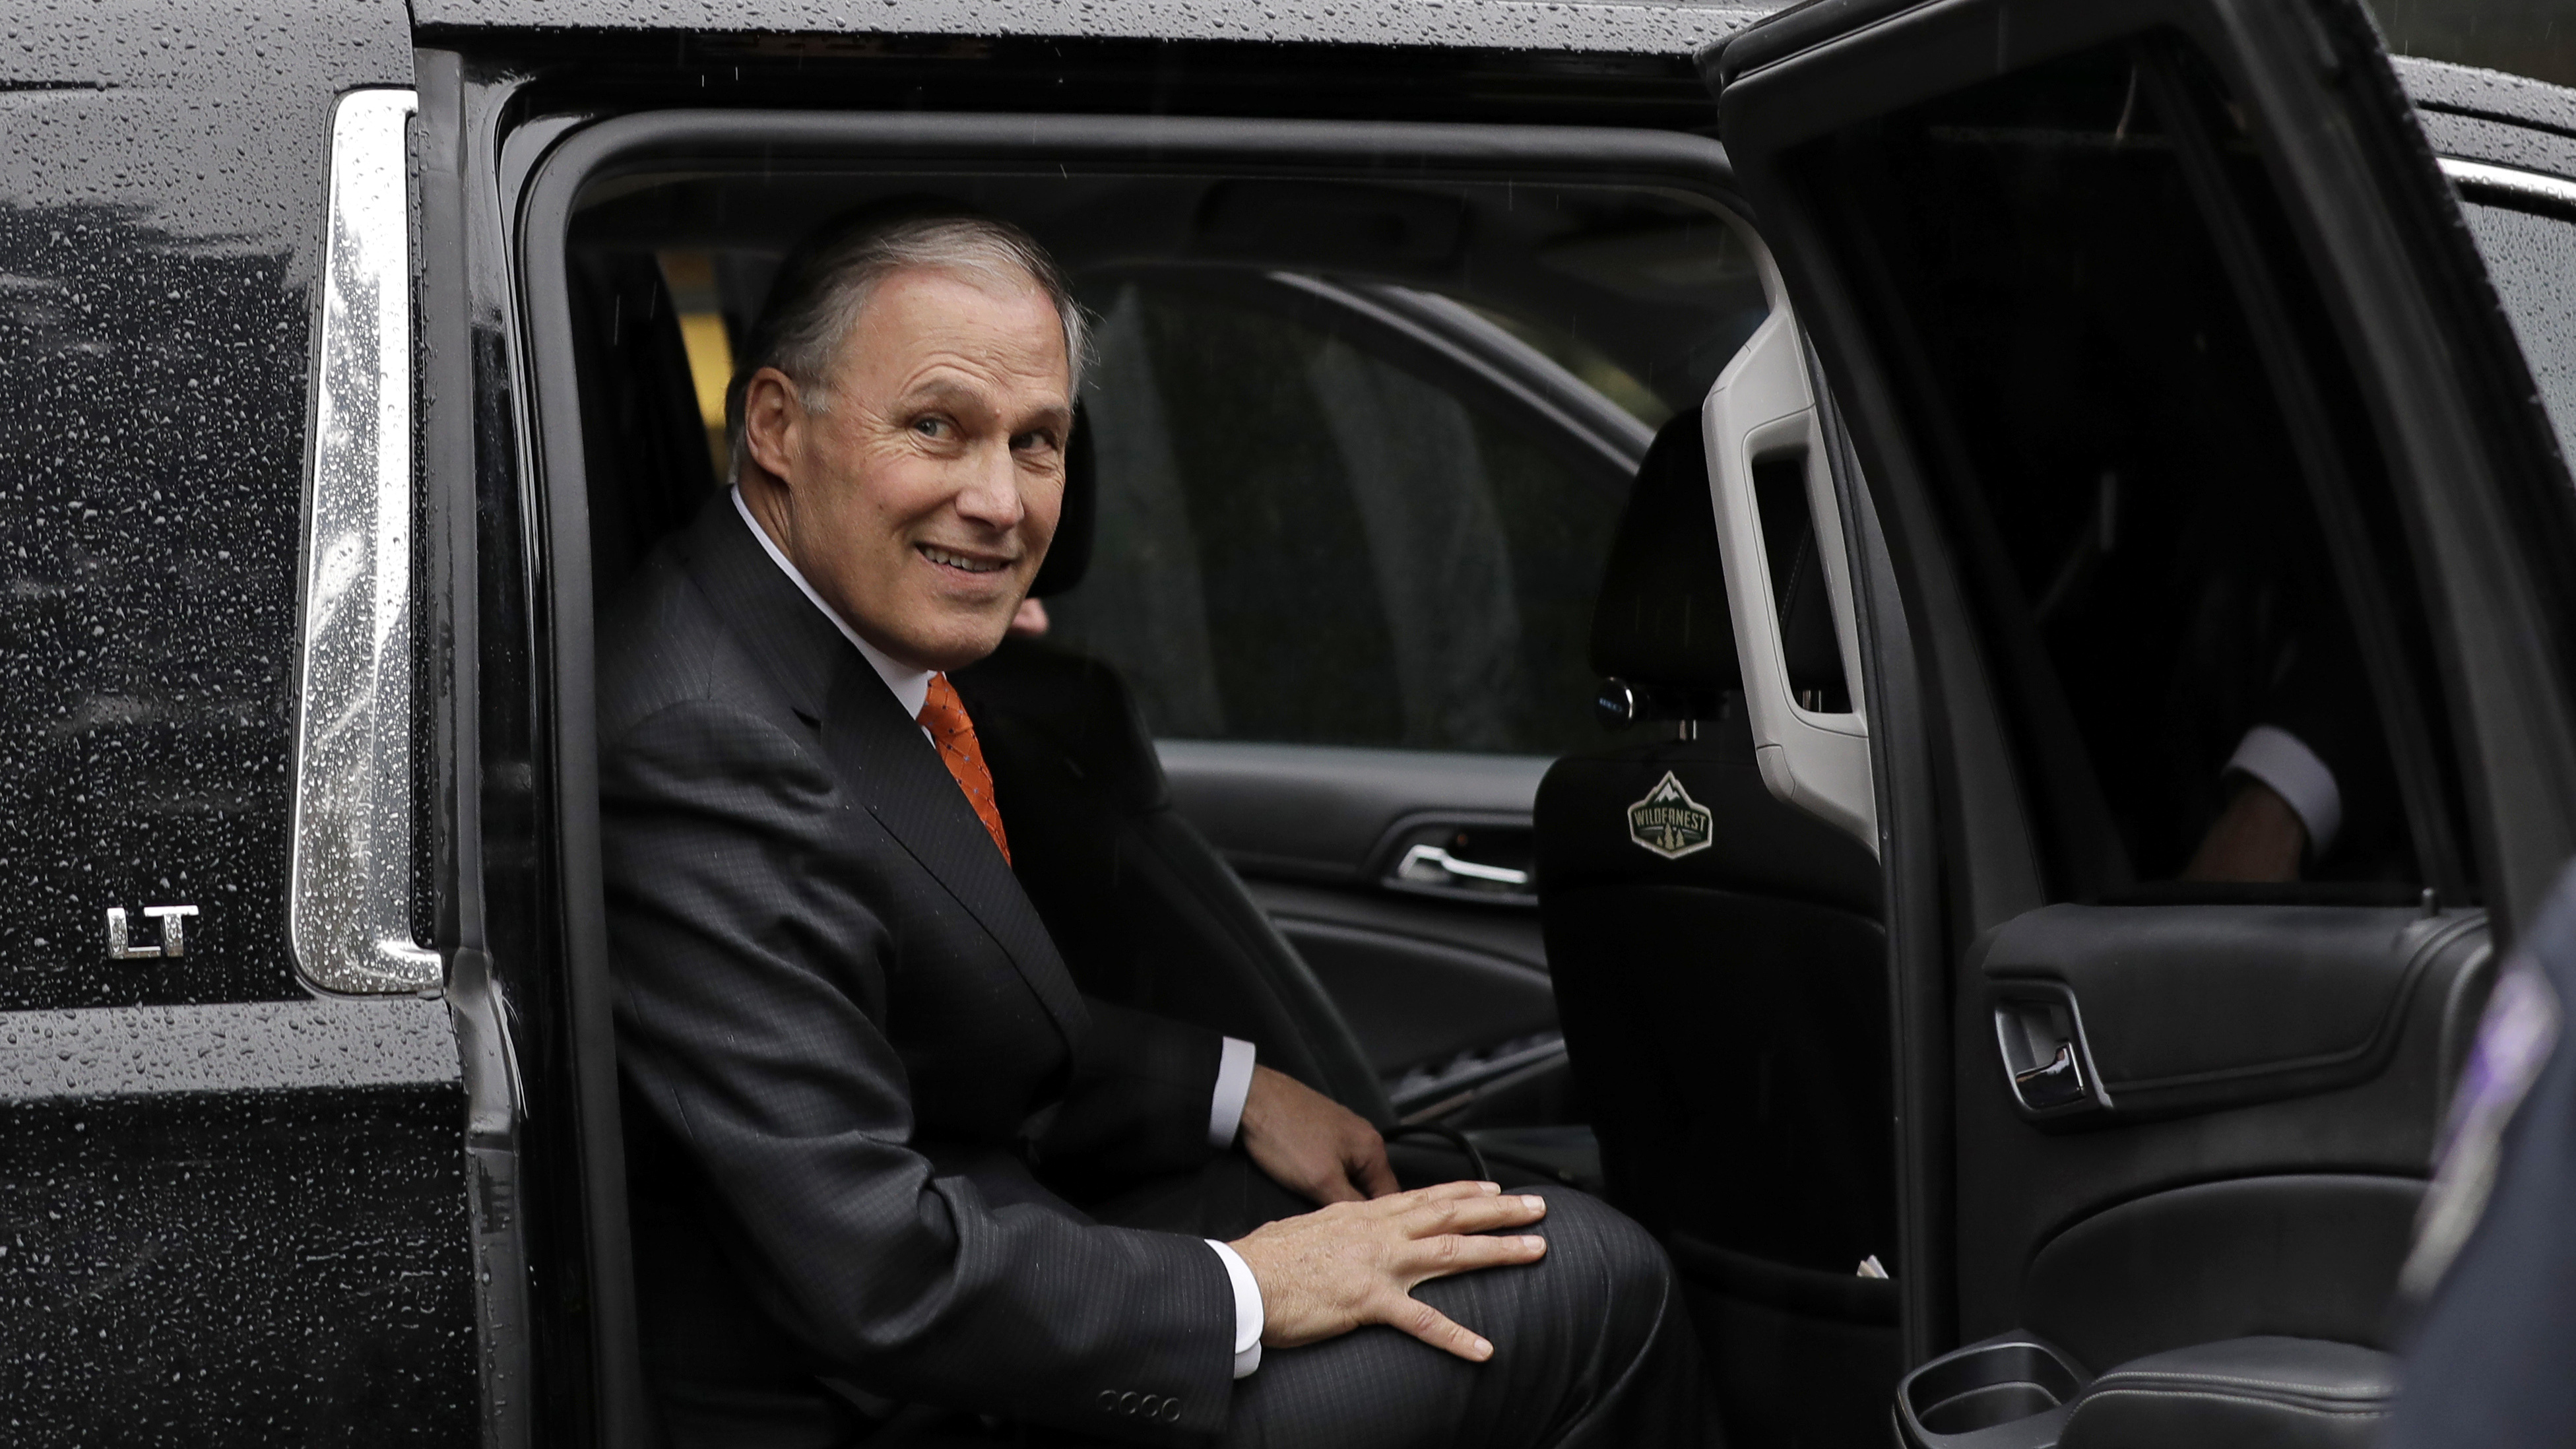 "Washington Gov. Jay Inslee gets into an SUV after speaking Wednesday, March 6, 2019, on at non-partisan panel discussion titled ""Foreign Affairs and National Security in the Age of Climate Change"" hosted by the University of Washington Jackson School and the American Security Project on the UW campus in Seattle. Inslee announced last week that he would be seeking the Democratic nomination for President."